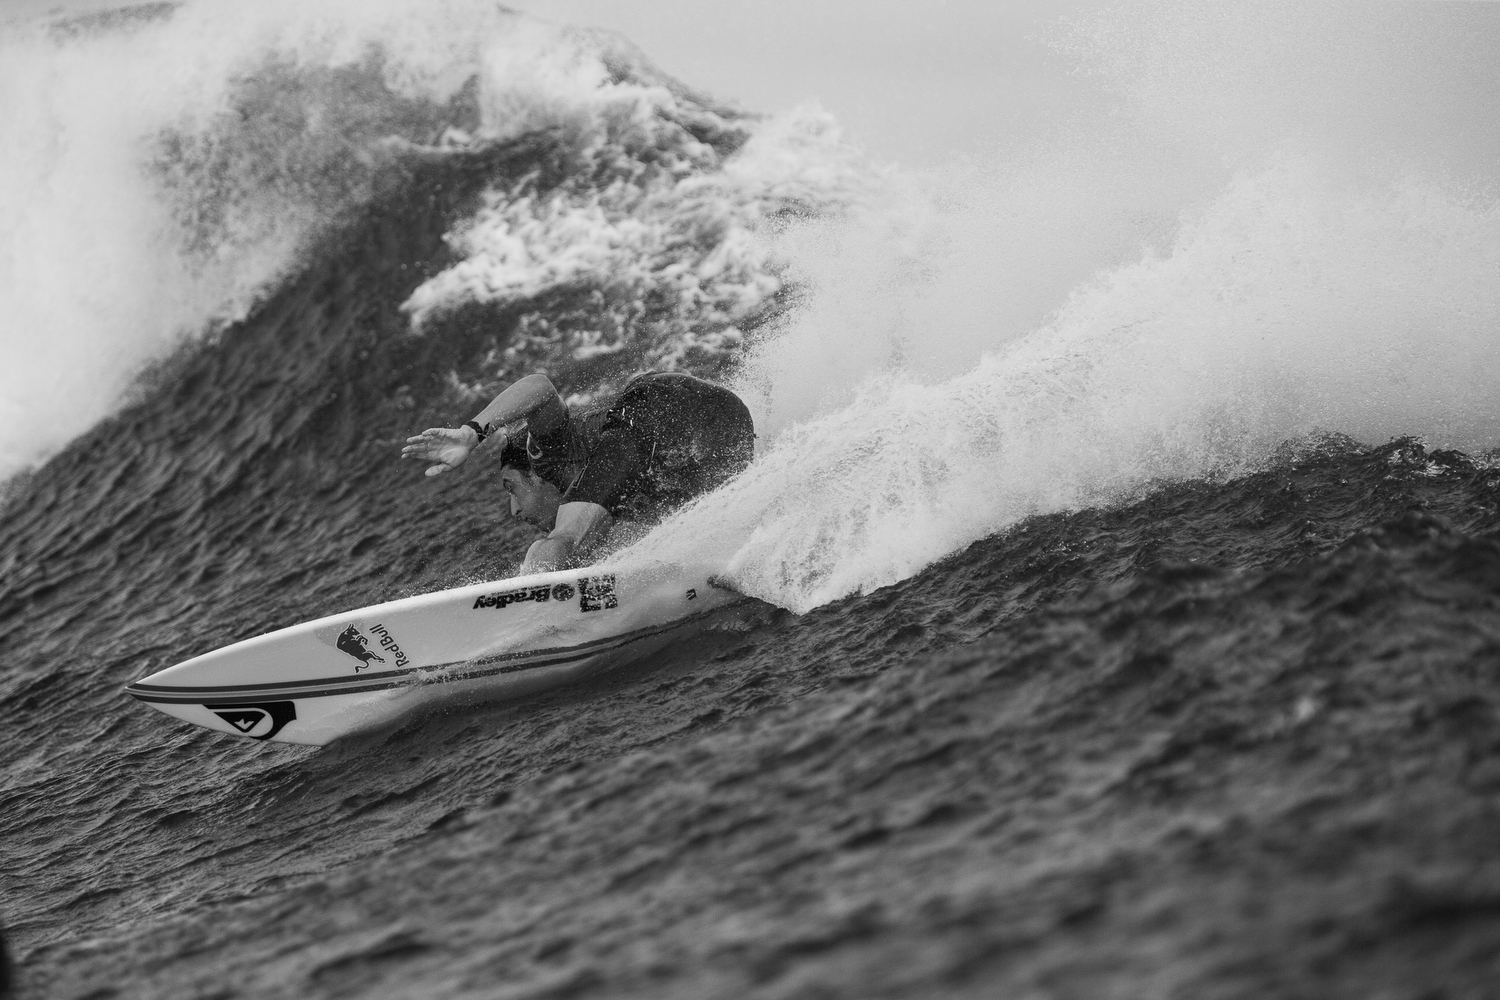 Fioravanti, slicing through Fijian waters.